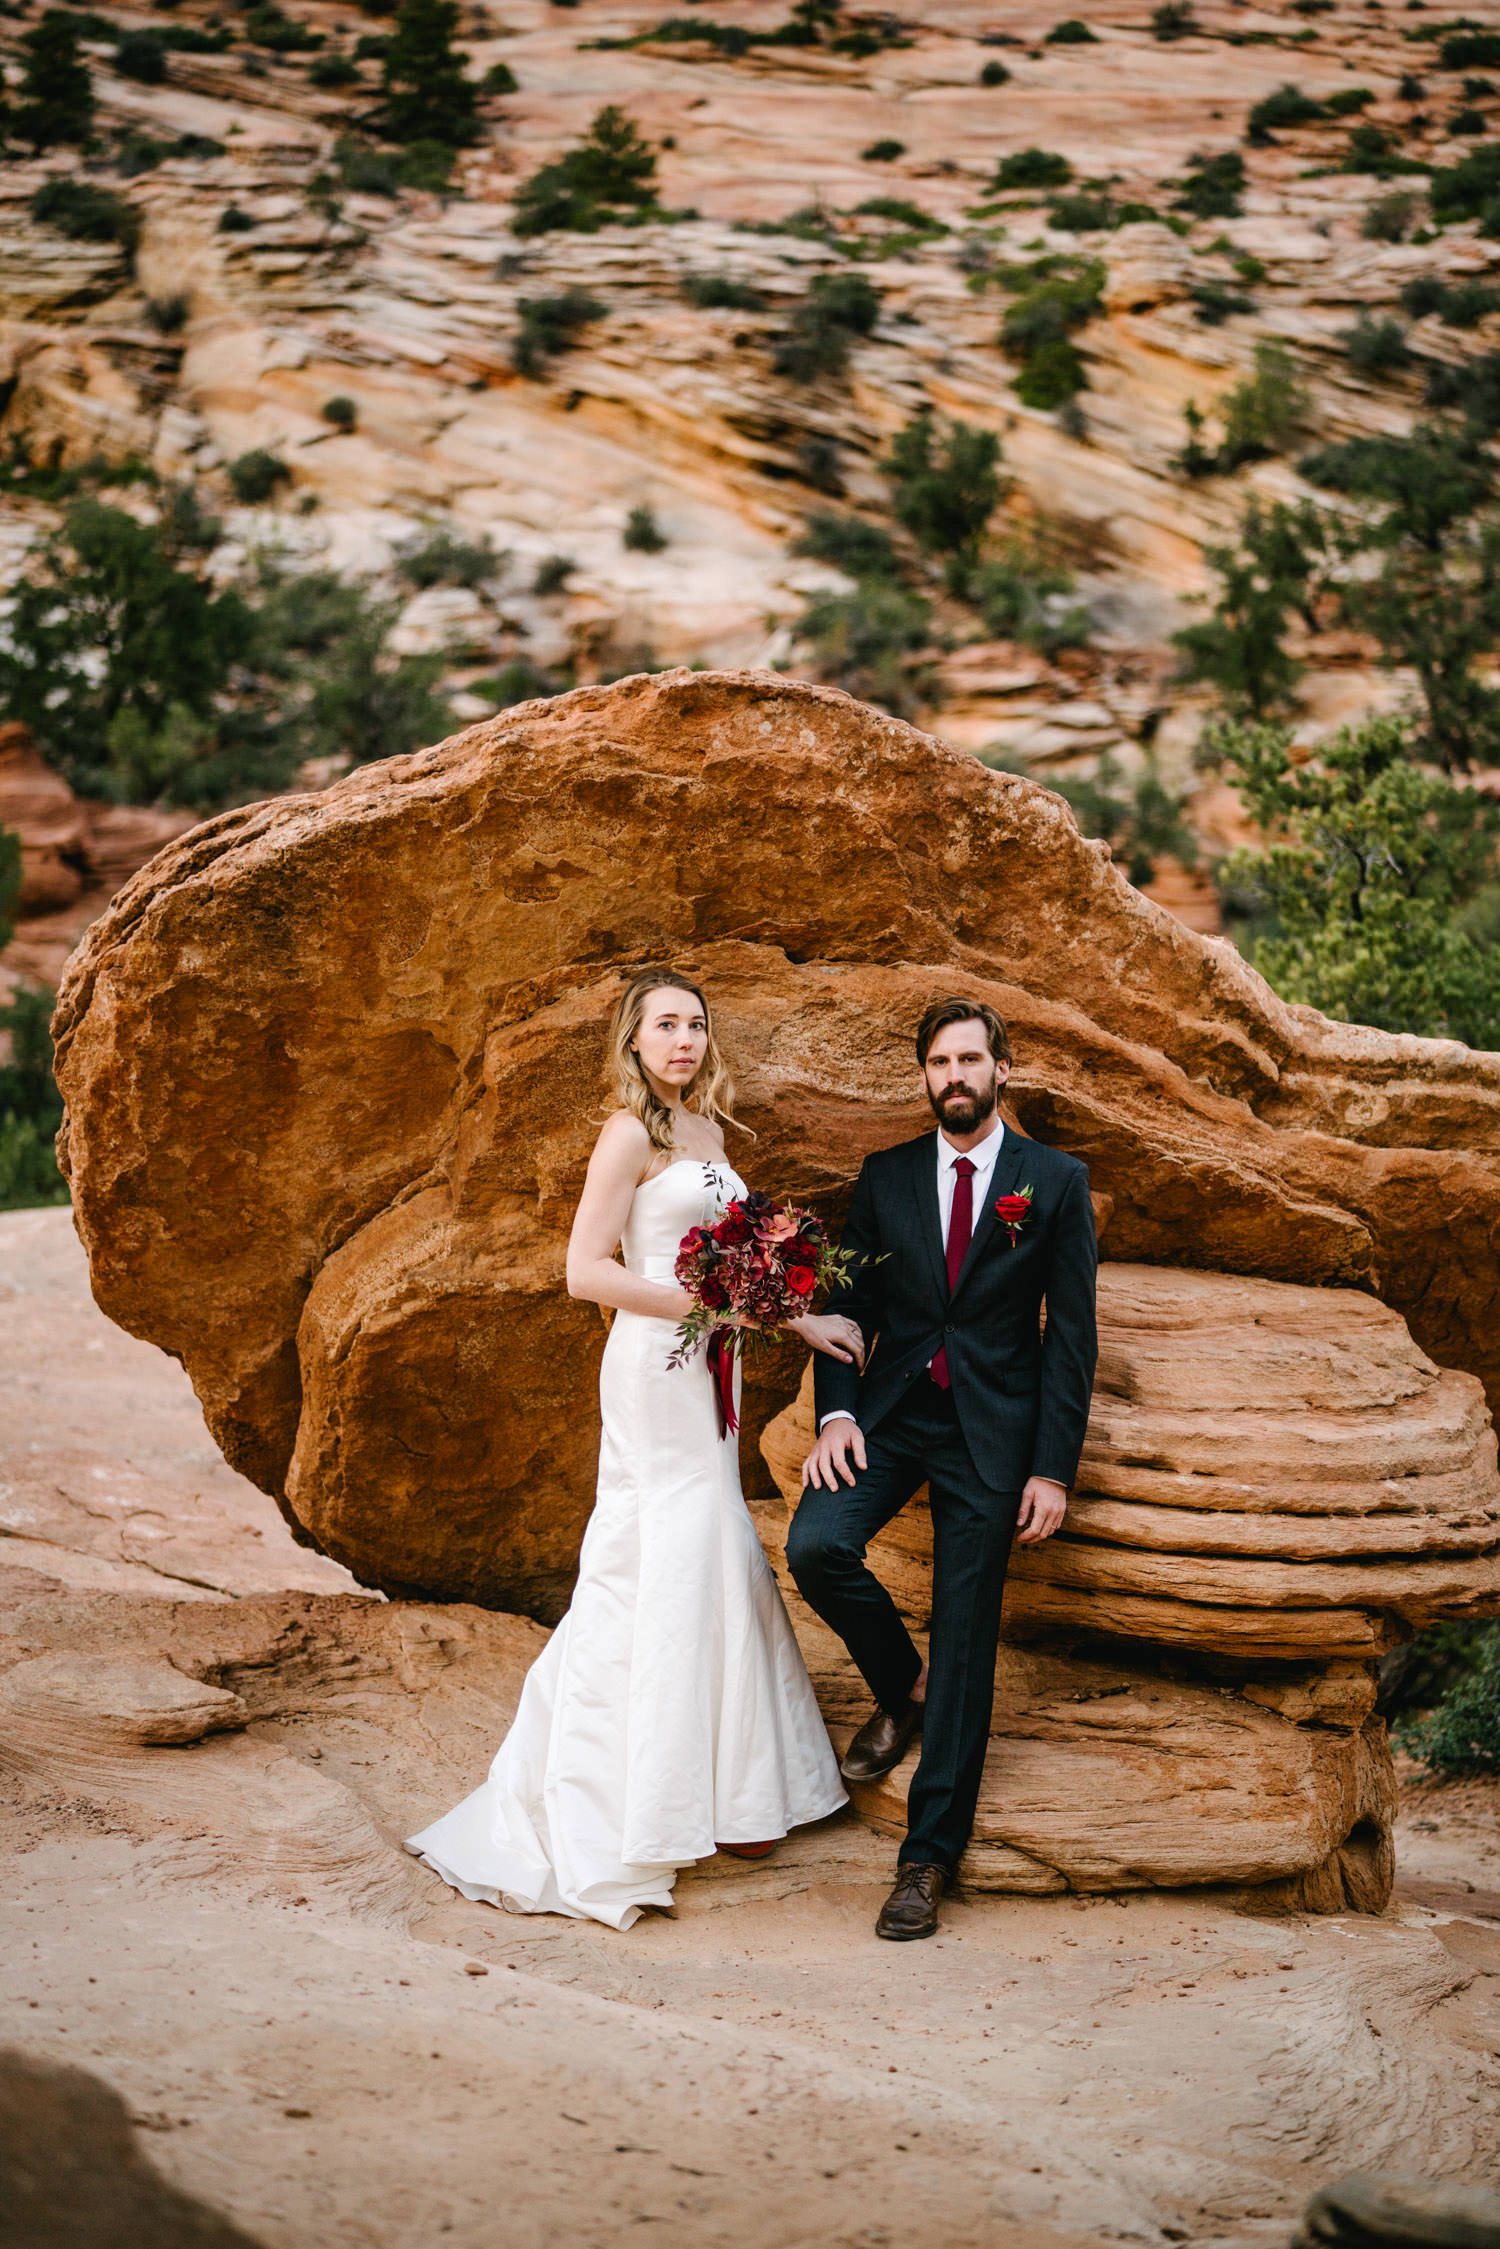 zionnationalpark_utah_destinationweddingphotographer_austendiamondphotography-12